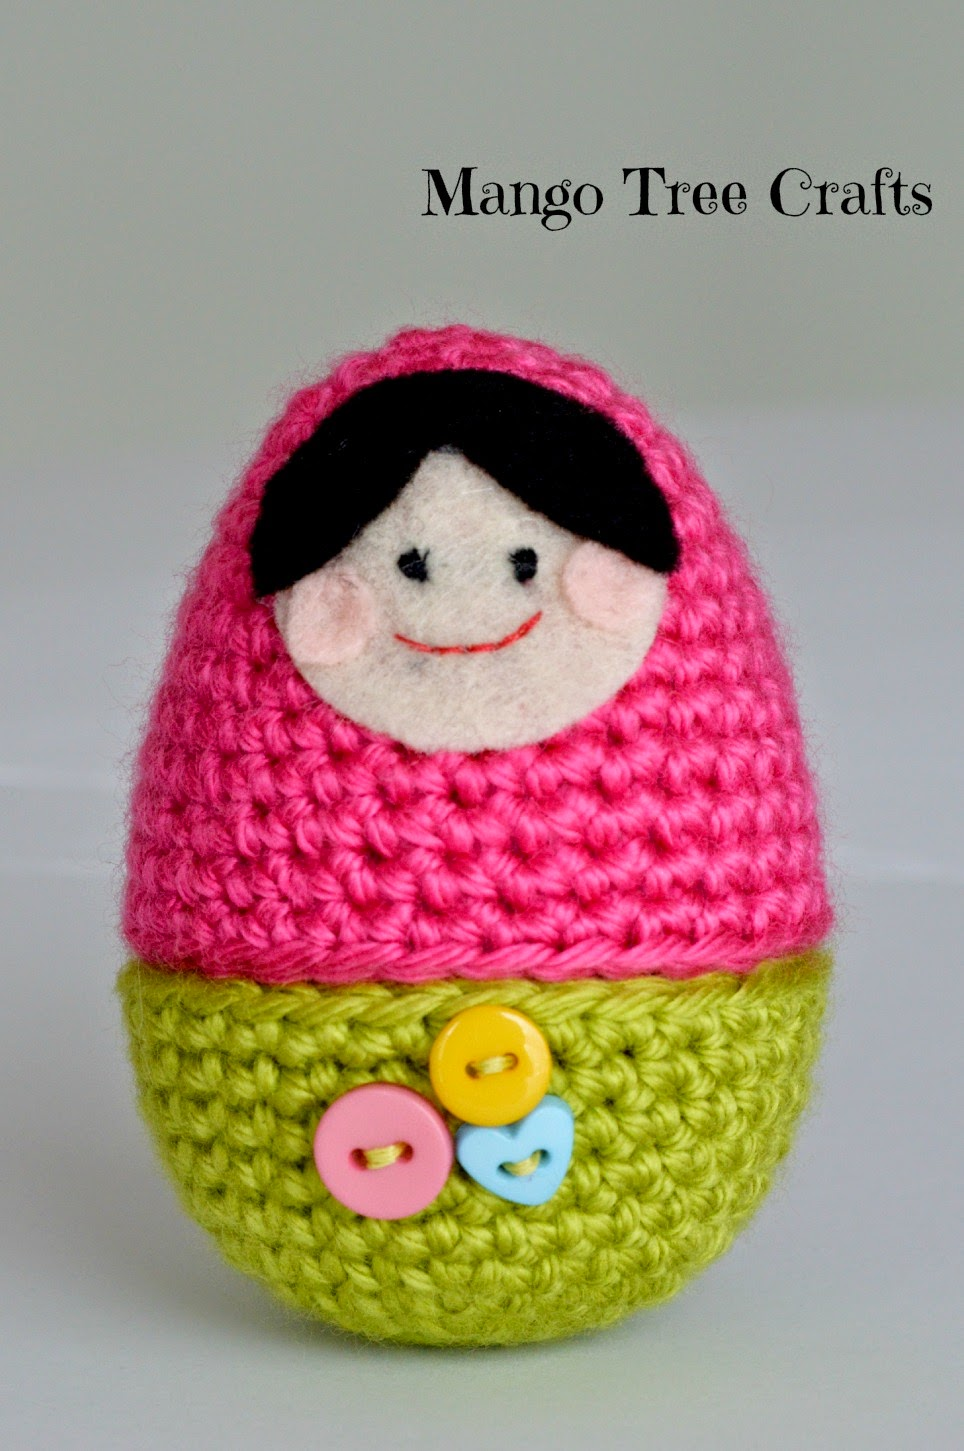 Crochet babushka doll Easter egg pattern